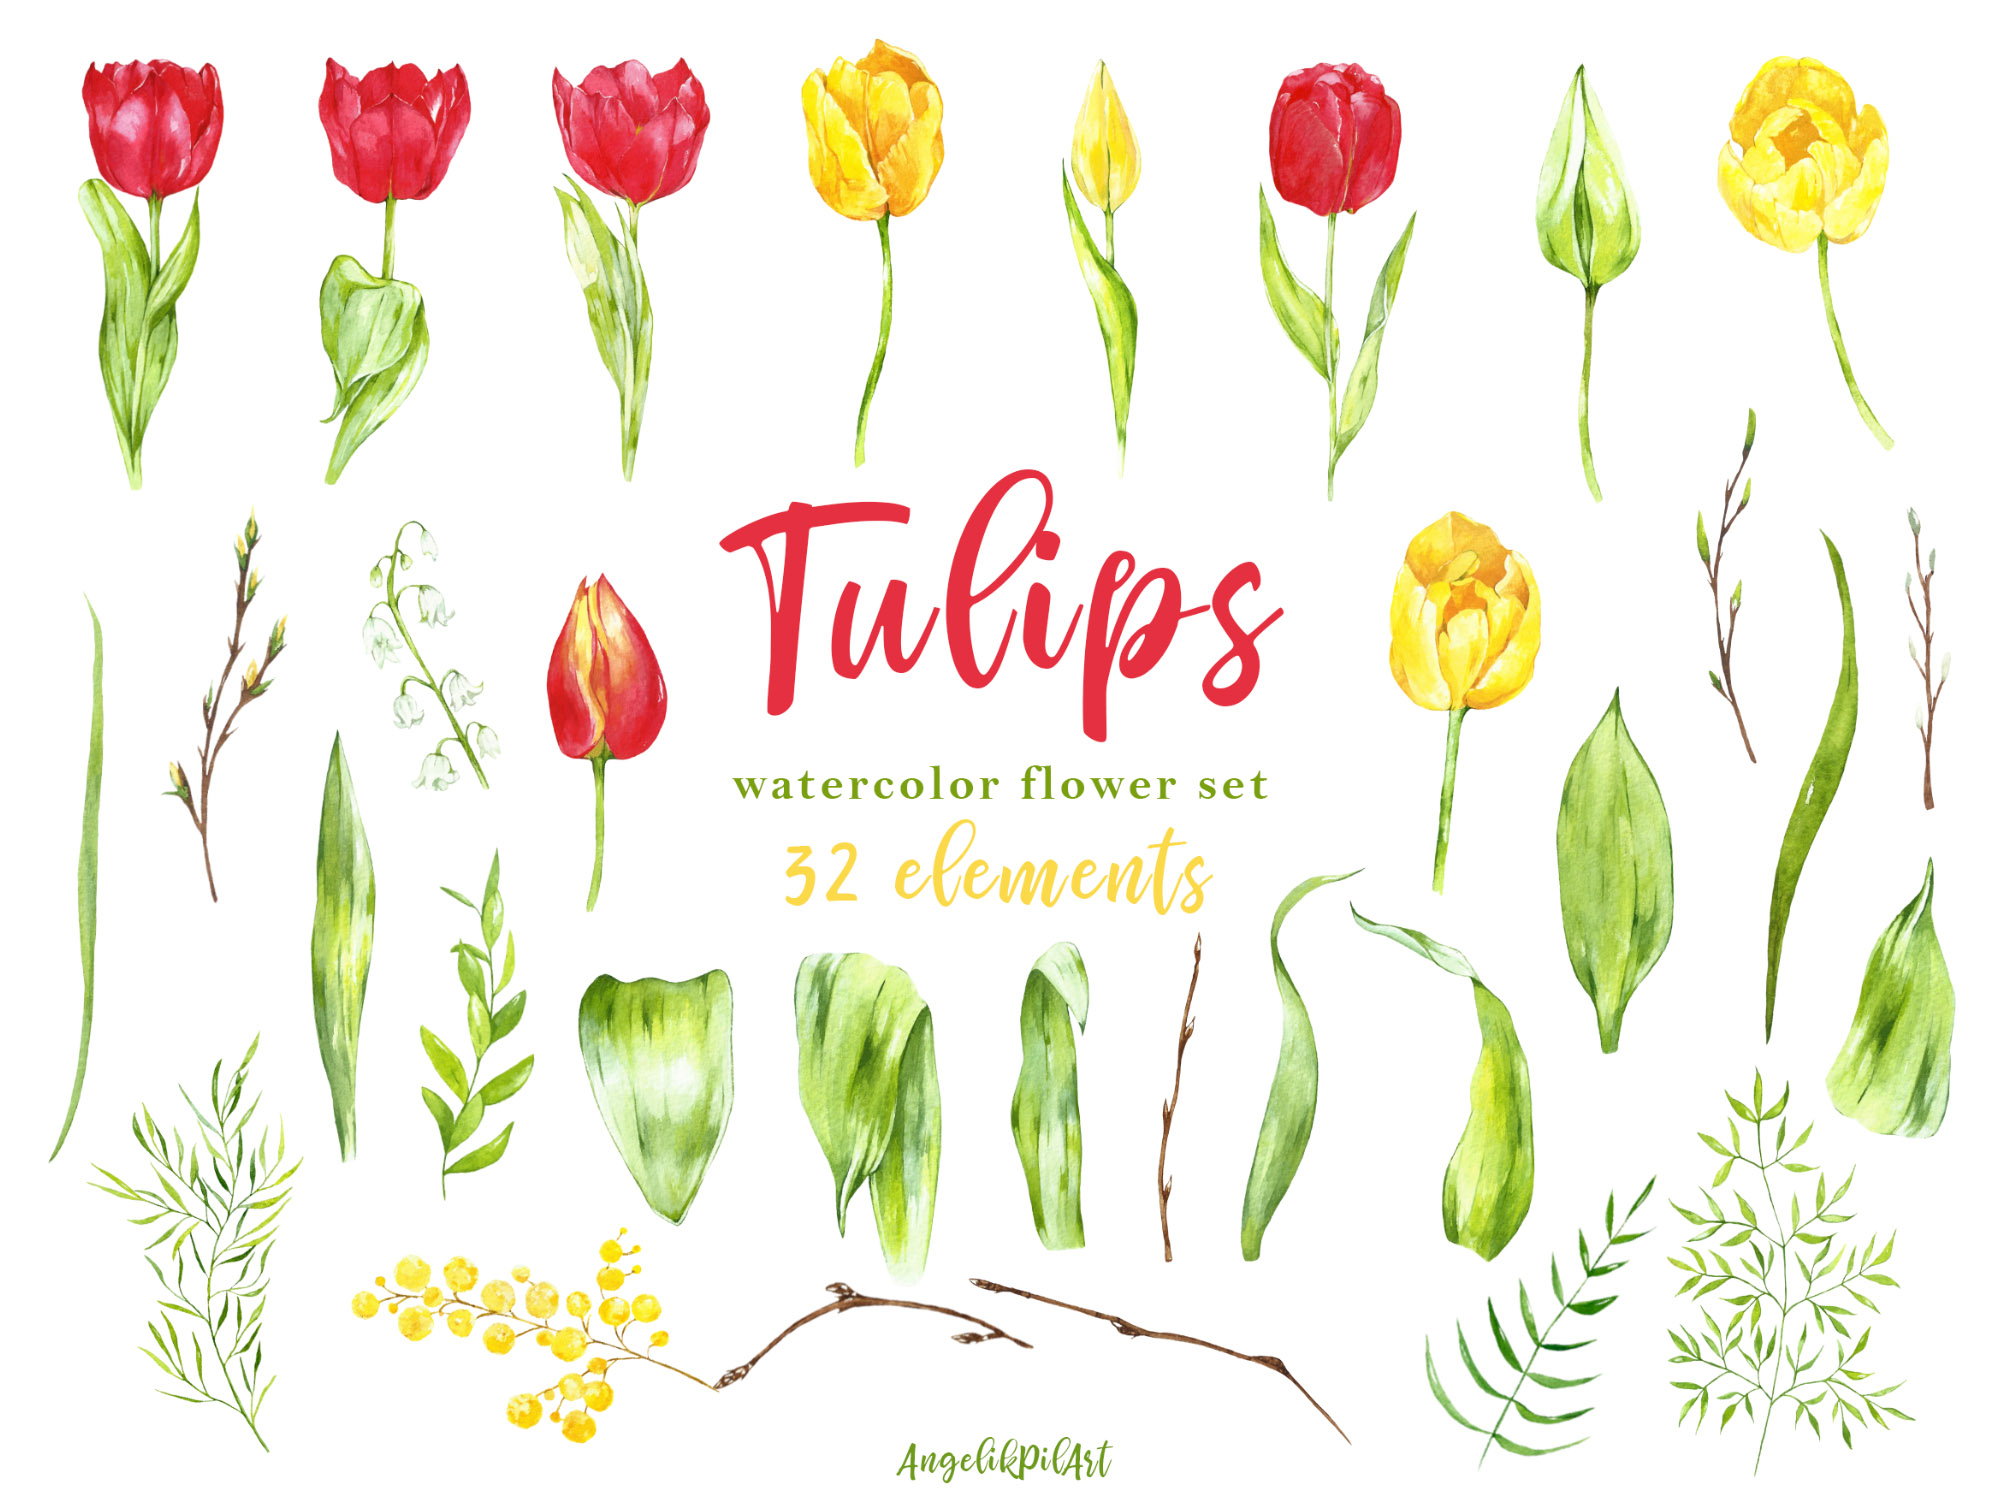 Watercolor hand- painted clipart. red ,yellow tulips, example image 2